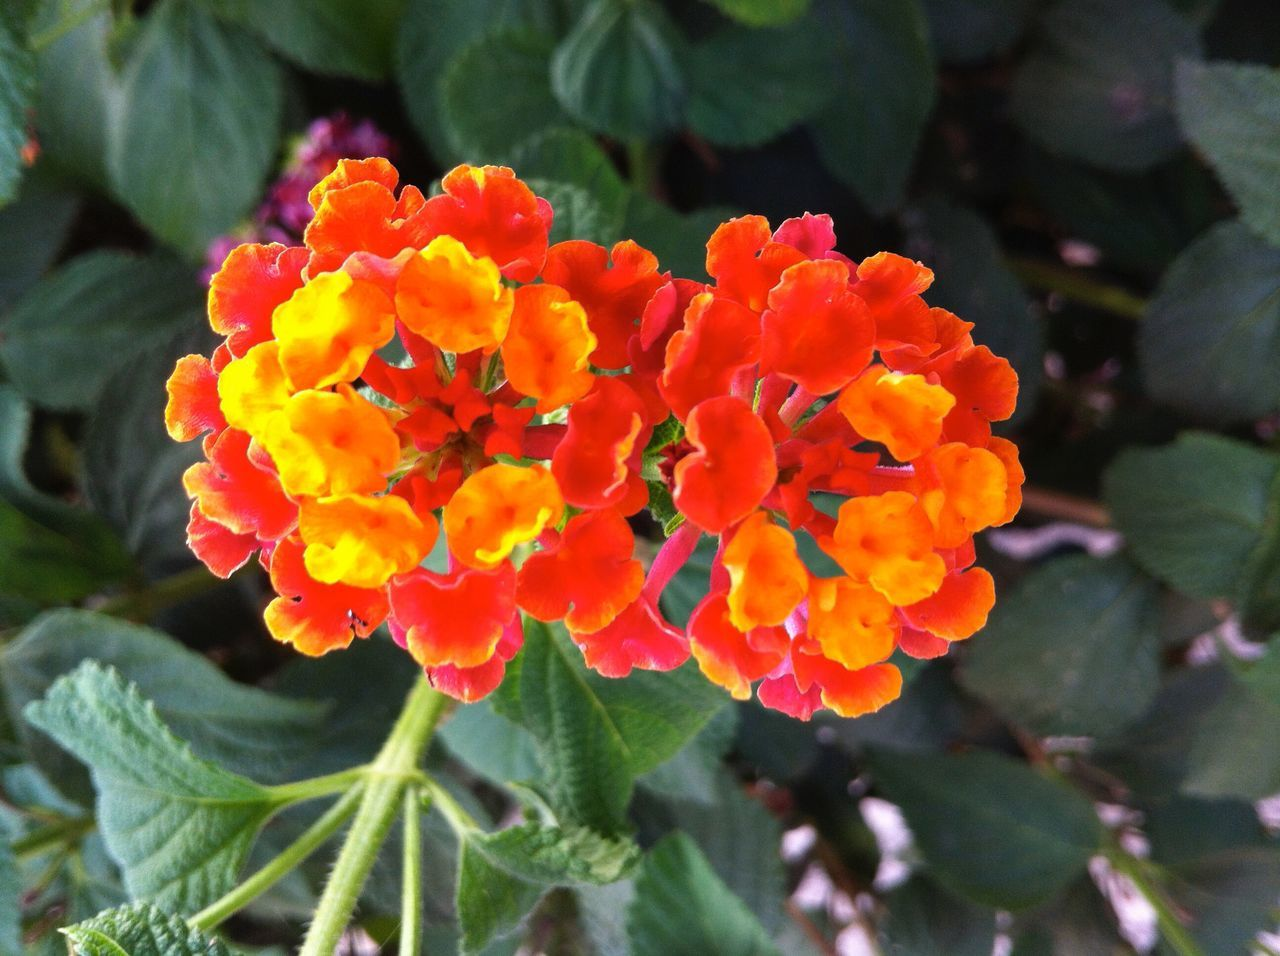 Yellow as the sun. Red like the heart Flower Nature Petal Plant Orange Color Flower Head Color Colors Flowers Flower Collection Flower Photography Floral Flowers_collection Flowers, Nature And Beauty Flowerphotography Photographer Photography Photograph